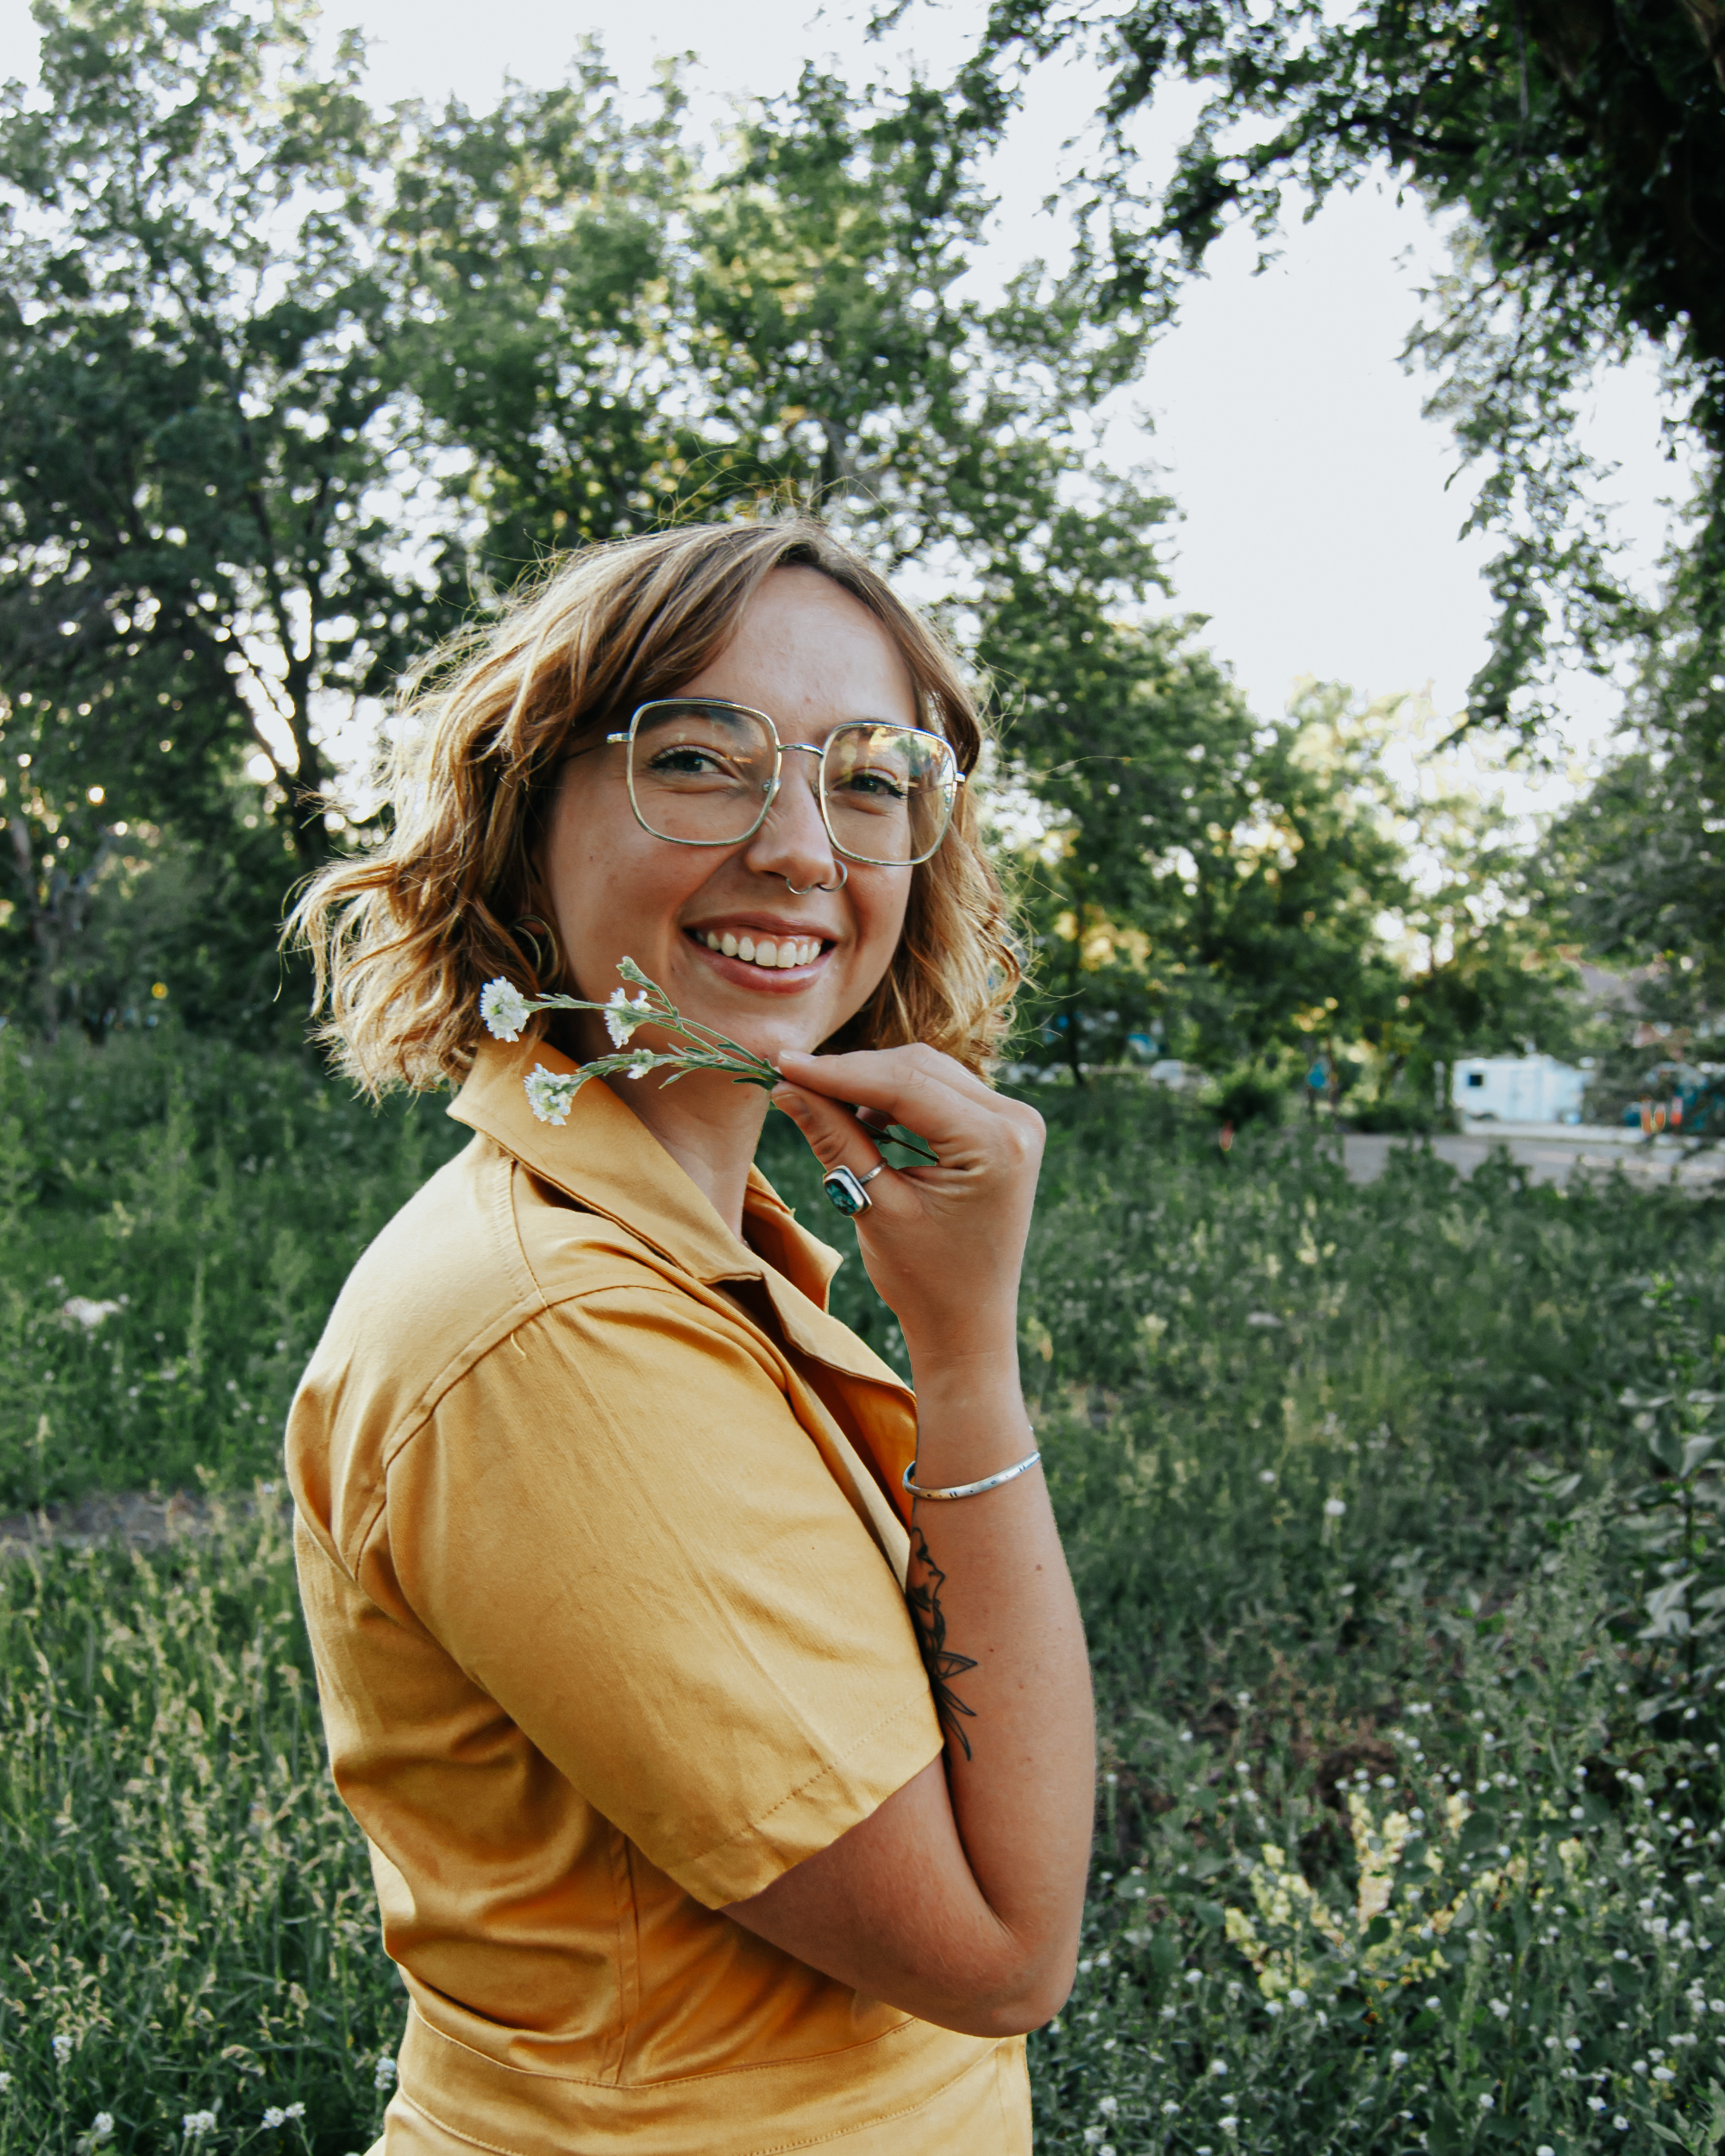 a photo of a woman (Anna) in a mustard yellow jumpsuit, from the waist up, turned to the side, with a bent arm, holding a flower below her chin. She has short curled, blonde-brown hair, on the lighter side. She wears oversized glasses with a thin silver rim. She has a cute nose that scrunches when she smiles, which she is doing. The background is a lush green field.